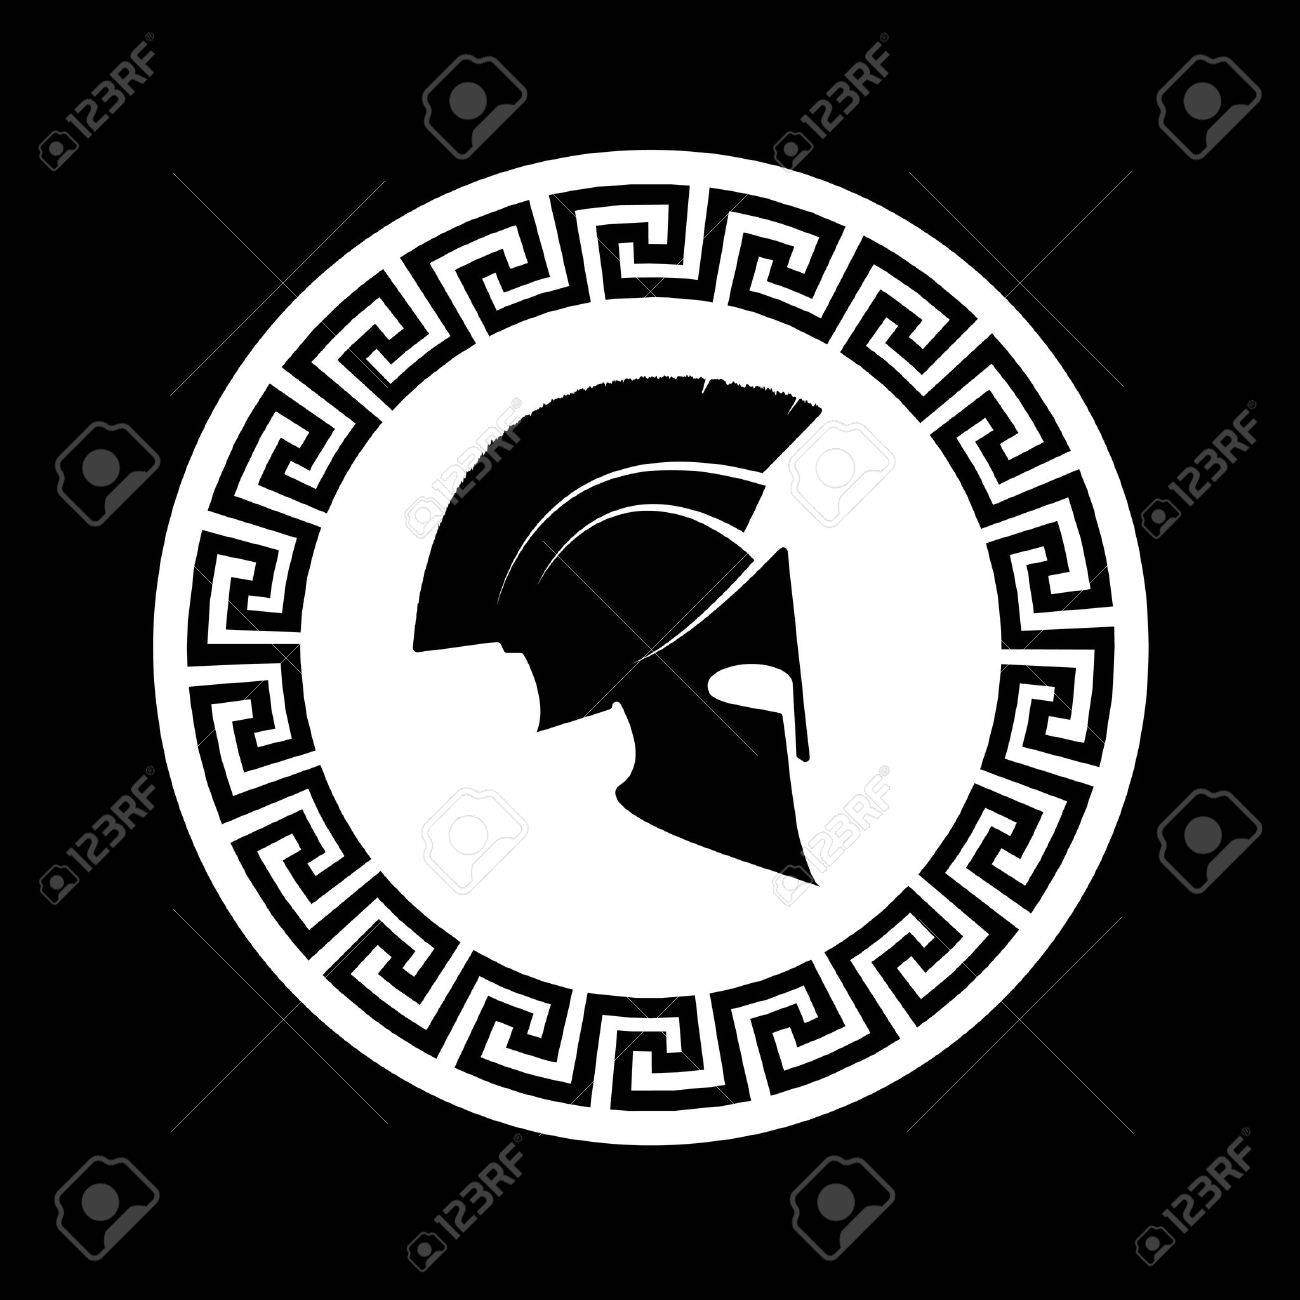 1300x1300 Spartan Stock Photos. Royalty Free Business Images